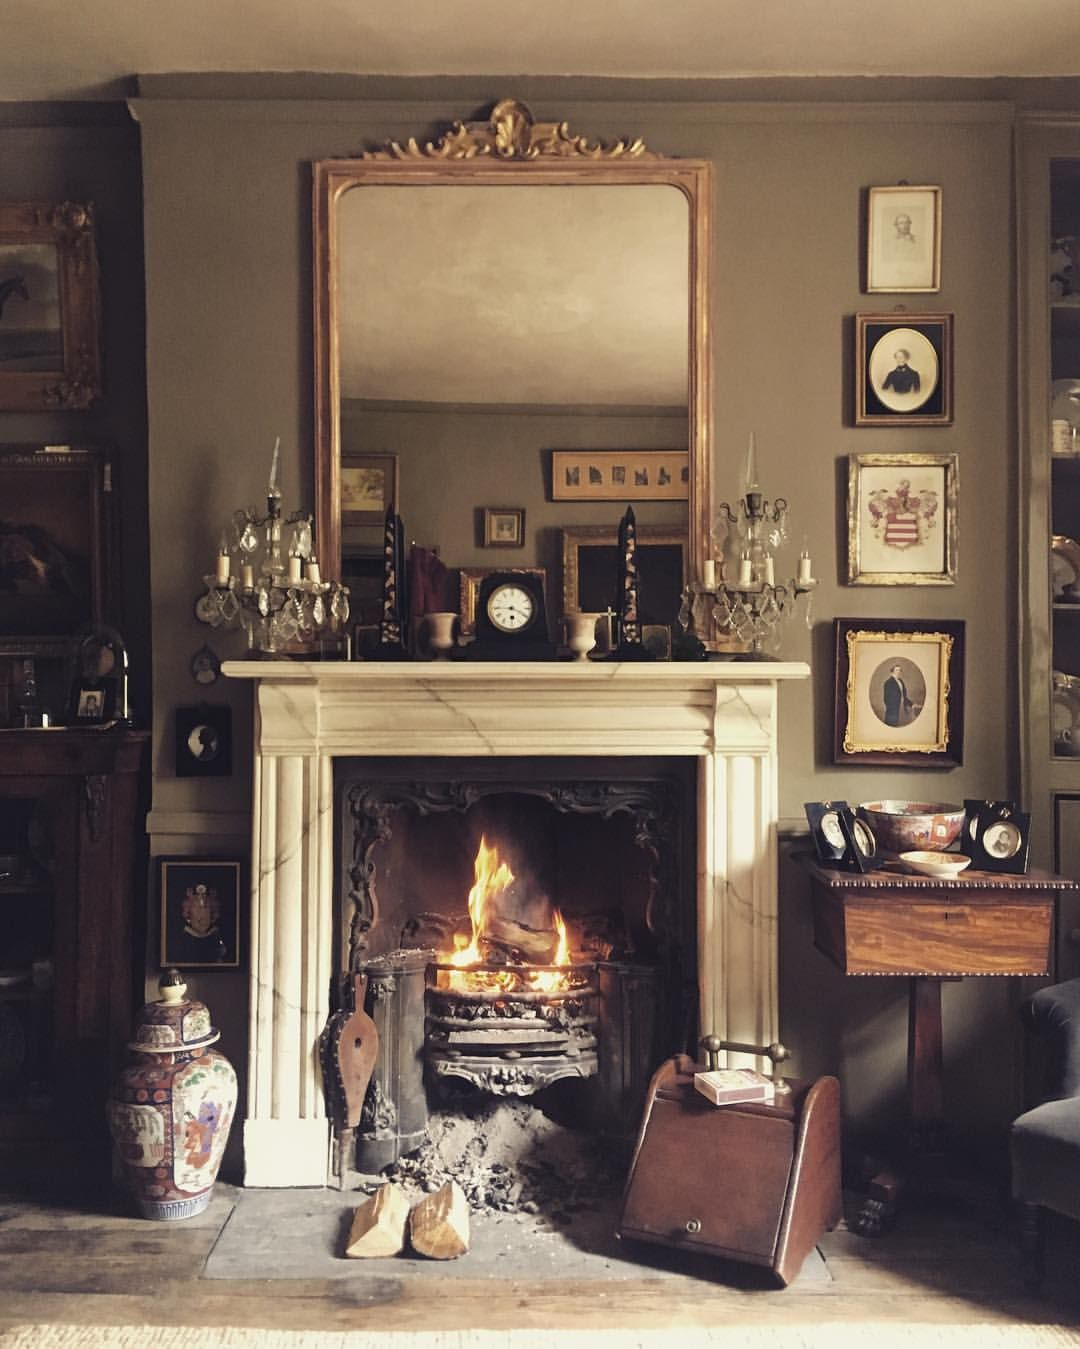 Pin by ell on fireplaces pinterest mantelpiece english country